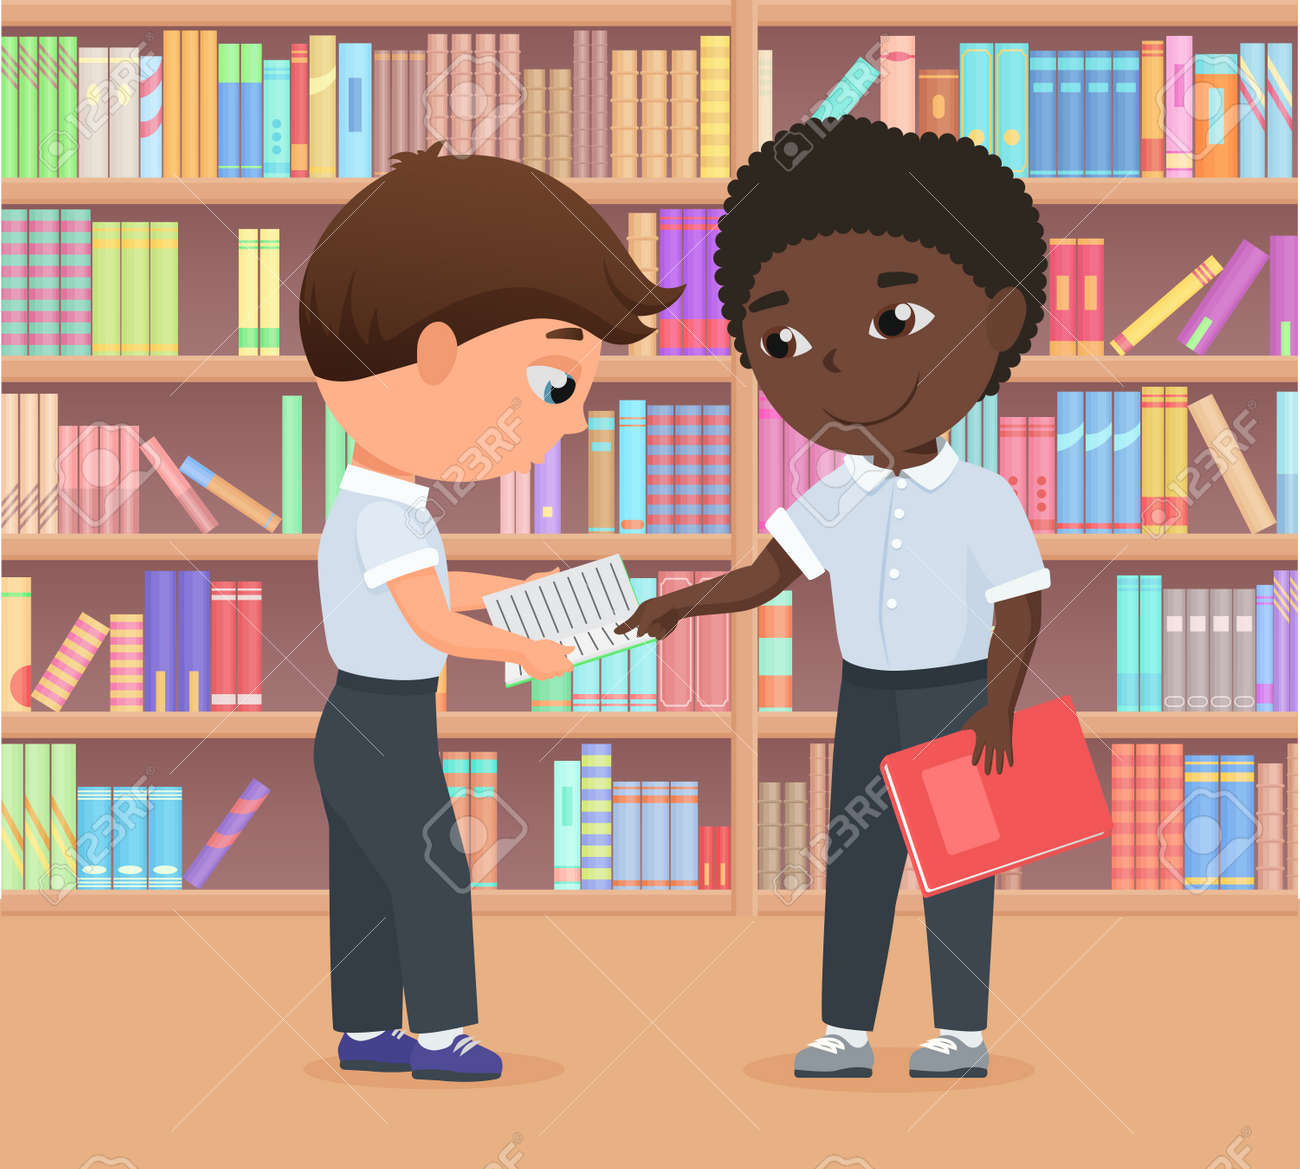 Children standing in library or bookstore together, kids study vector illustration. Cartoon character holding book, student boy helping friend to do homework, learning difficulties problems background - 170311169